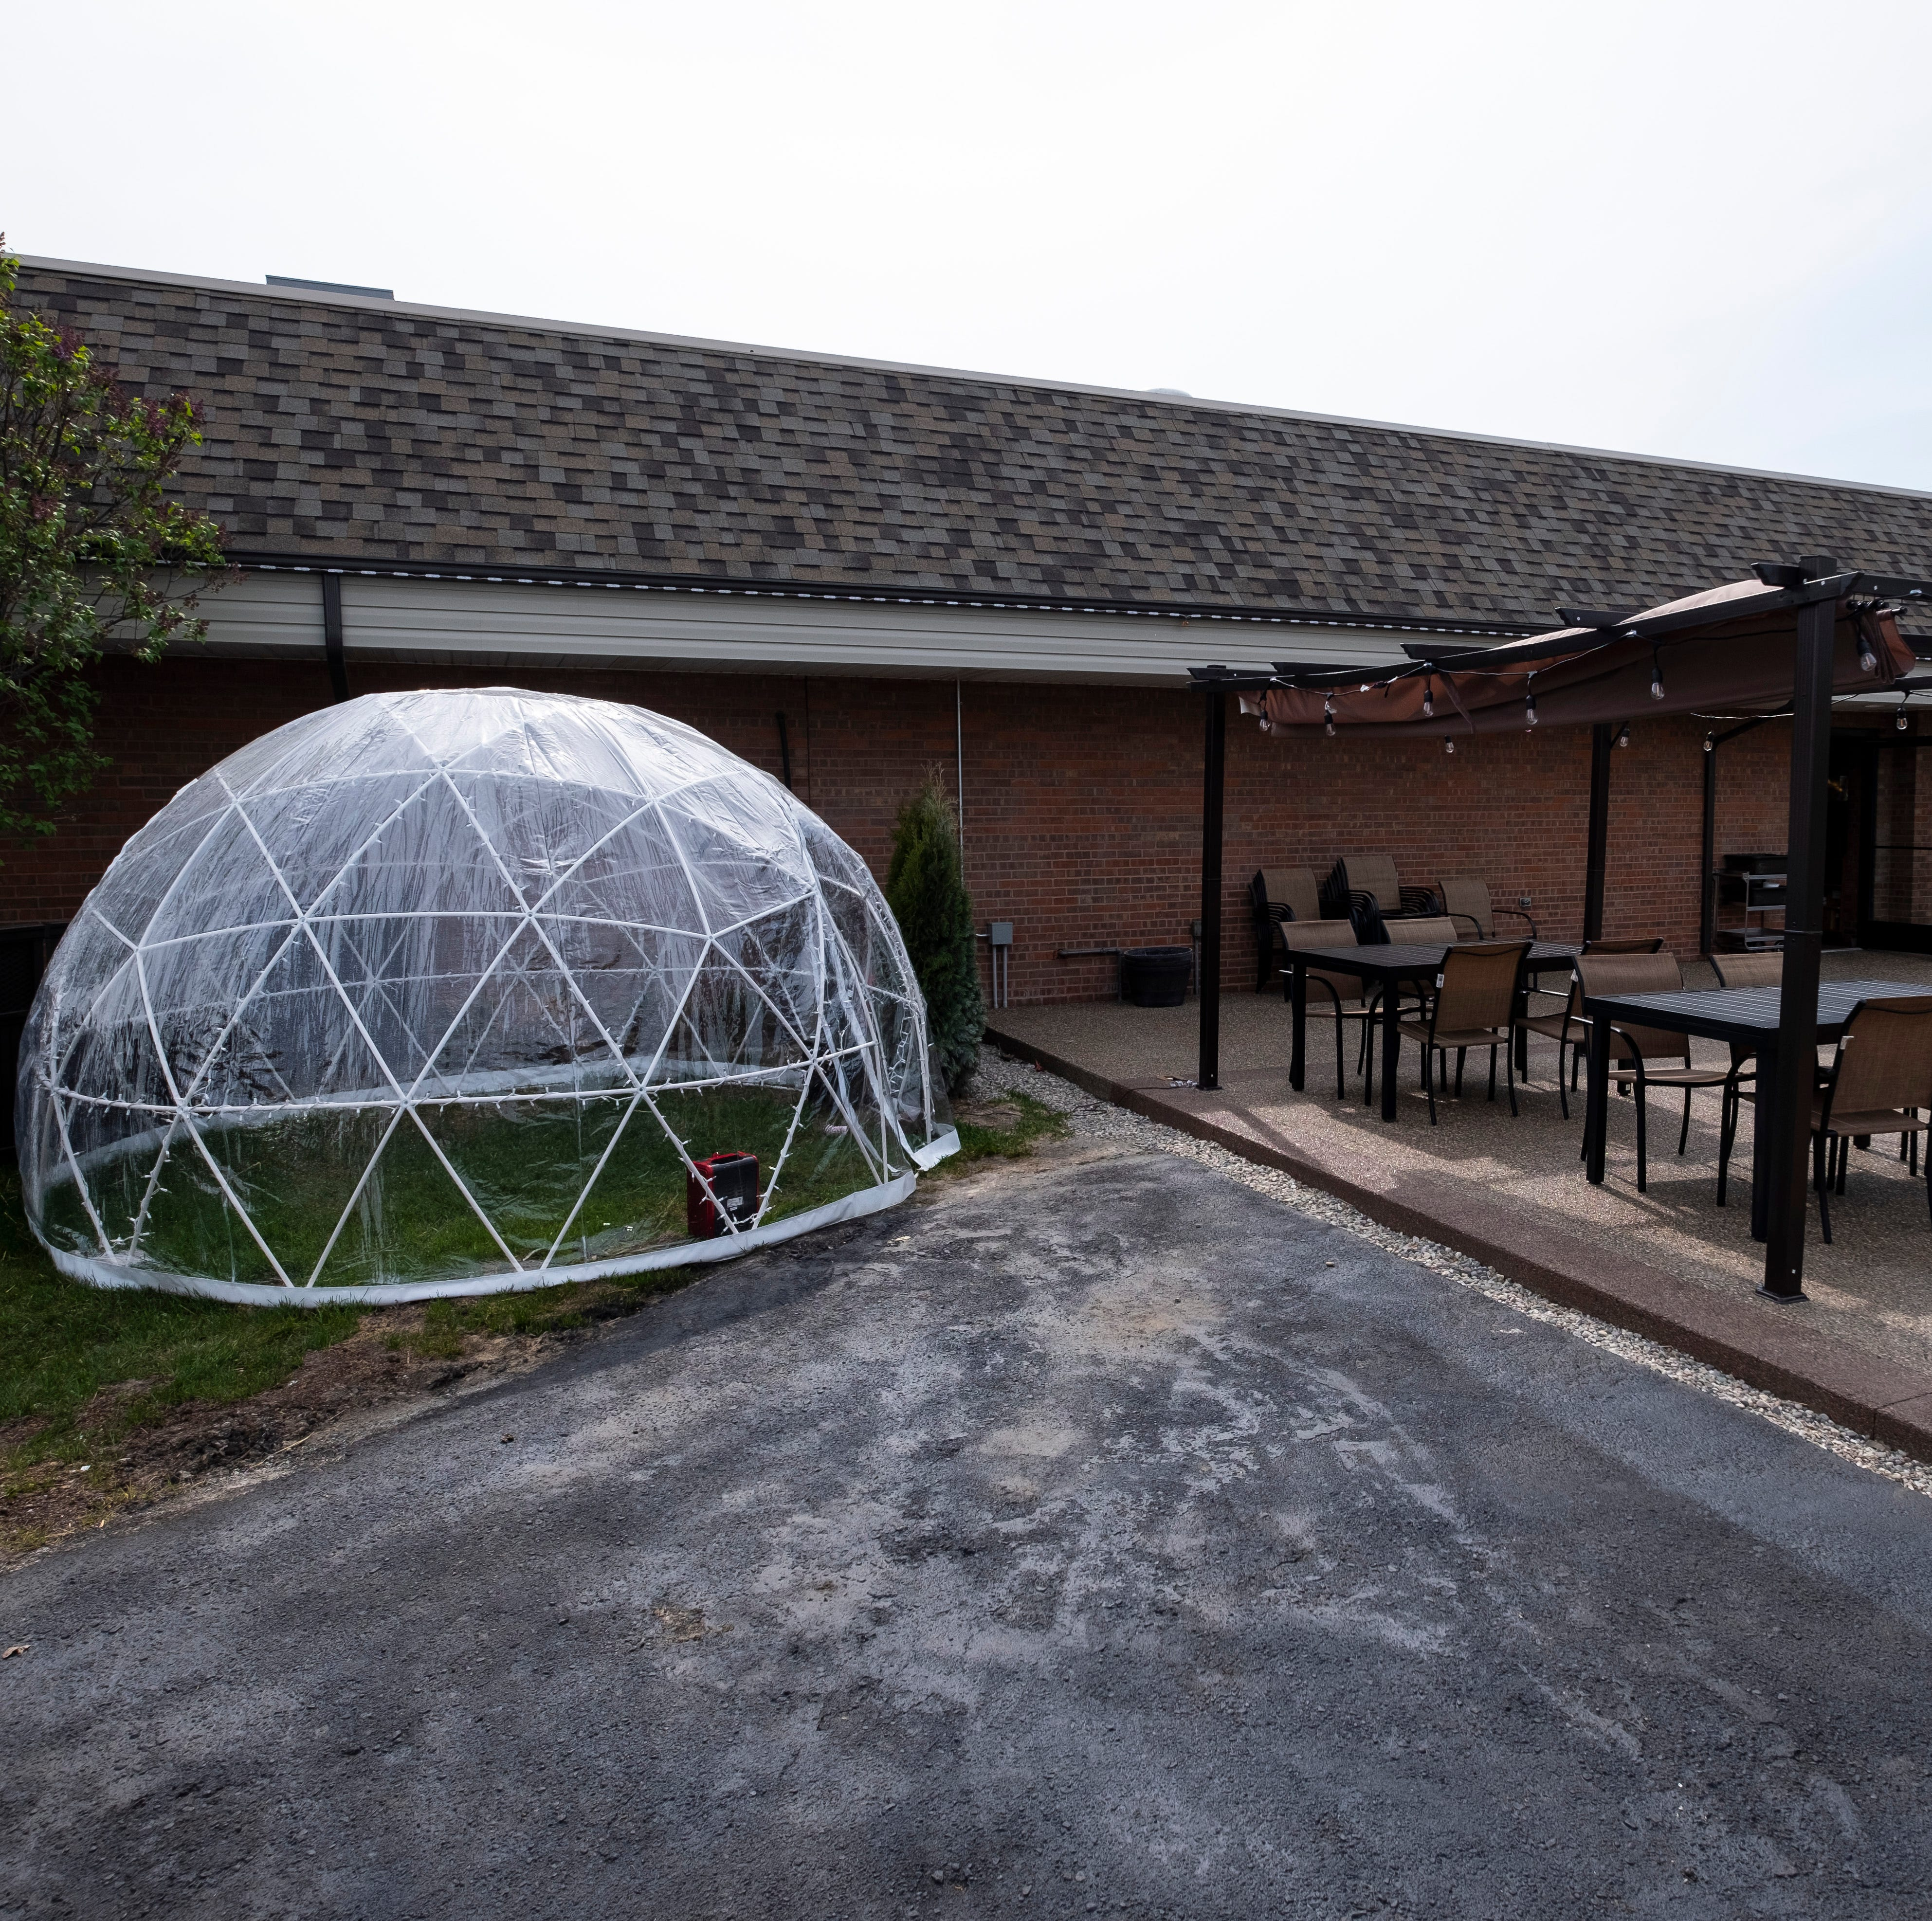 Marysville restaurant tests 'igloo' idea for outdoor dining